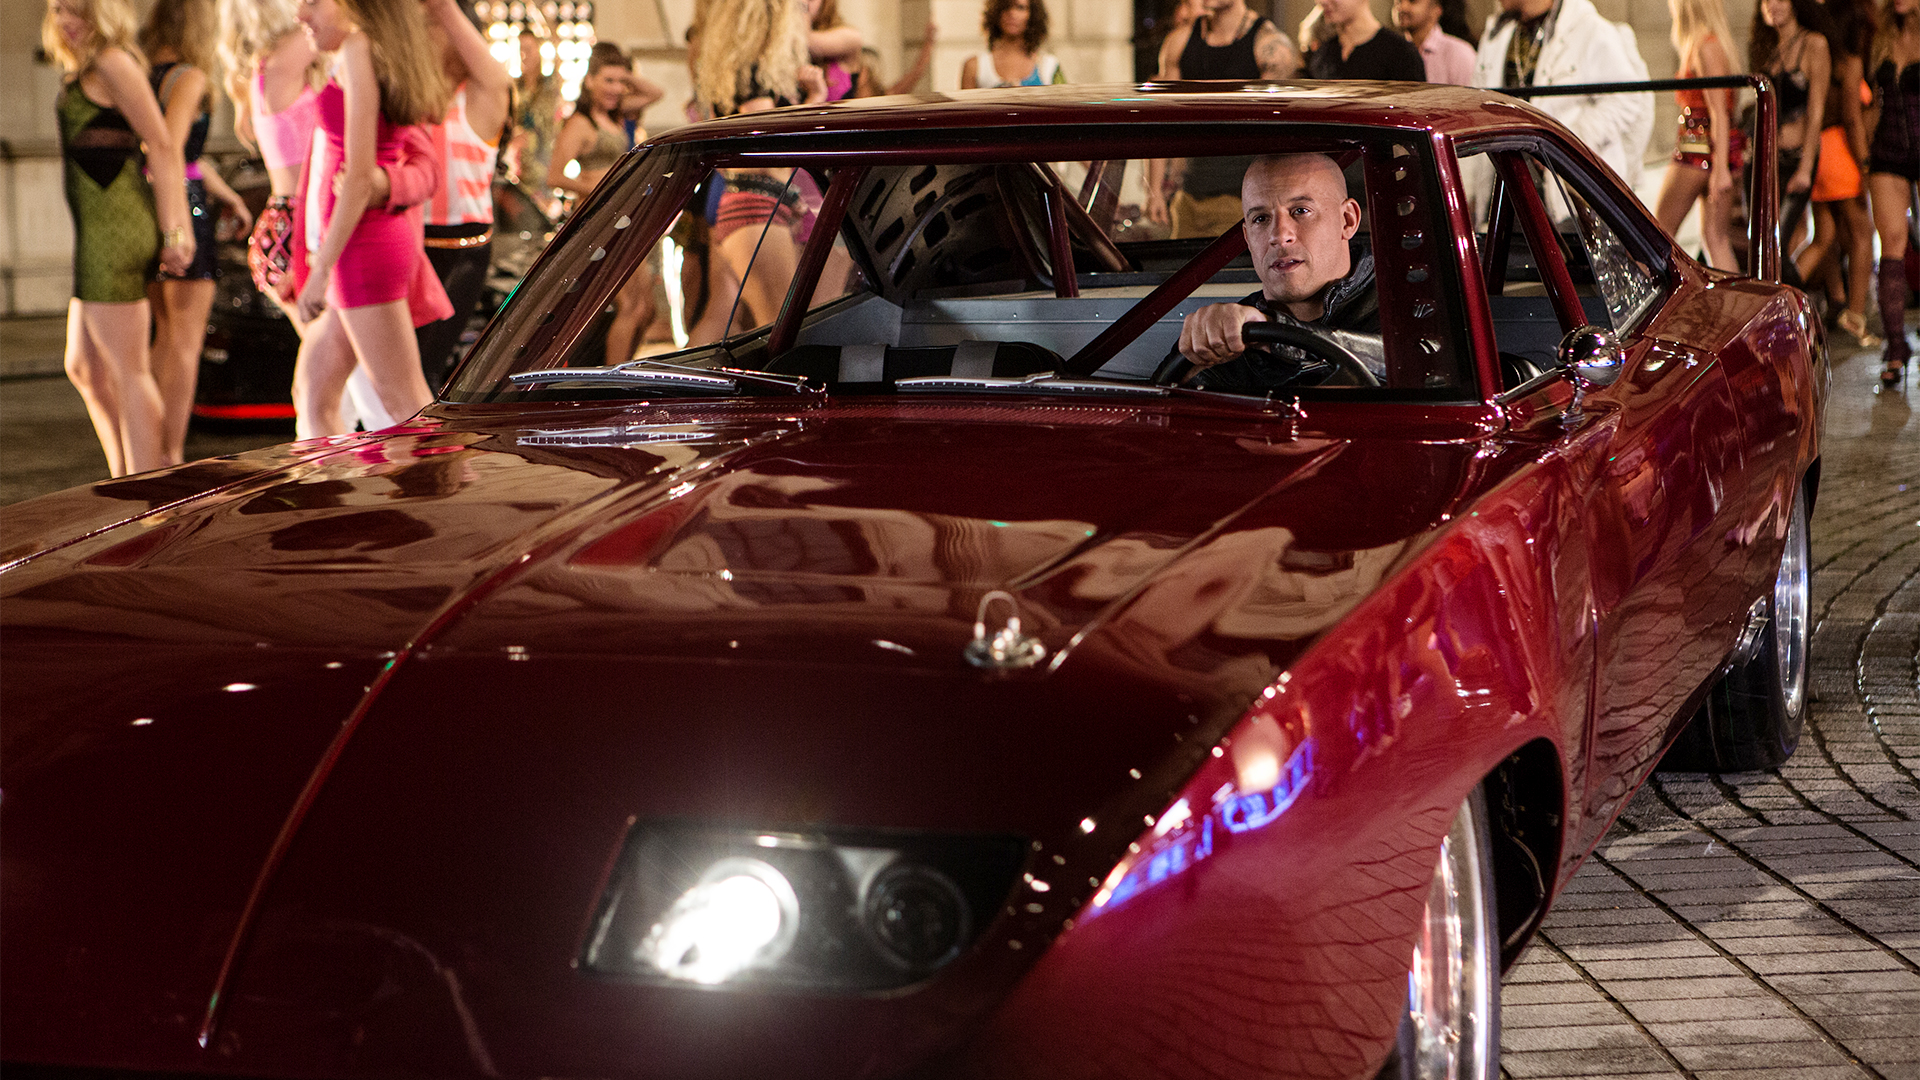 Published May 27, 2013 at 1920 × 1080 in Fast & Furious 6 (2013)